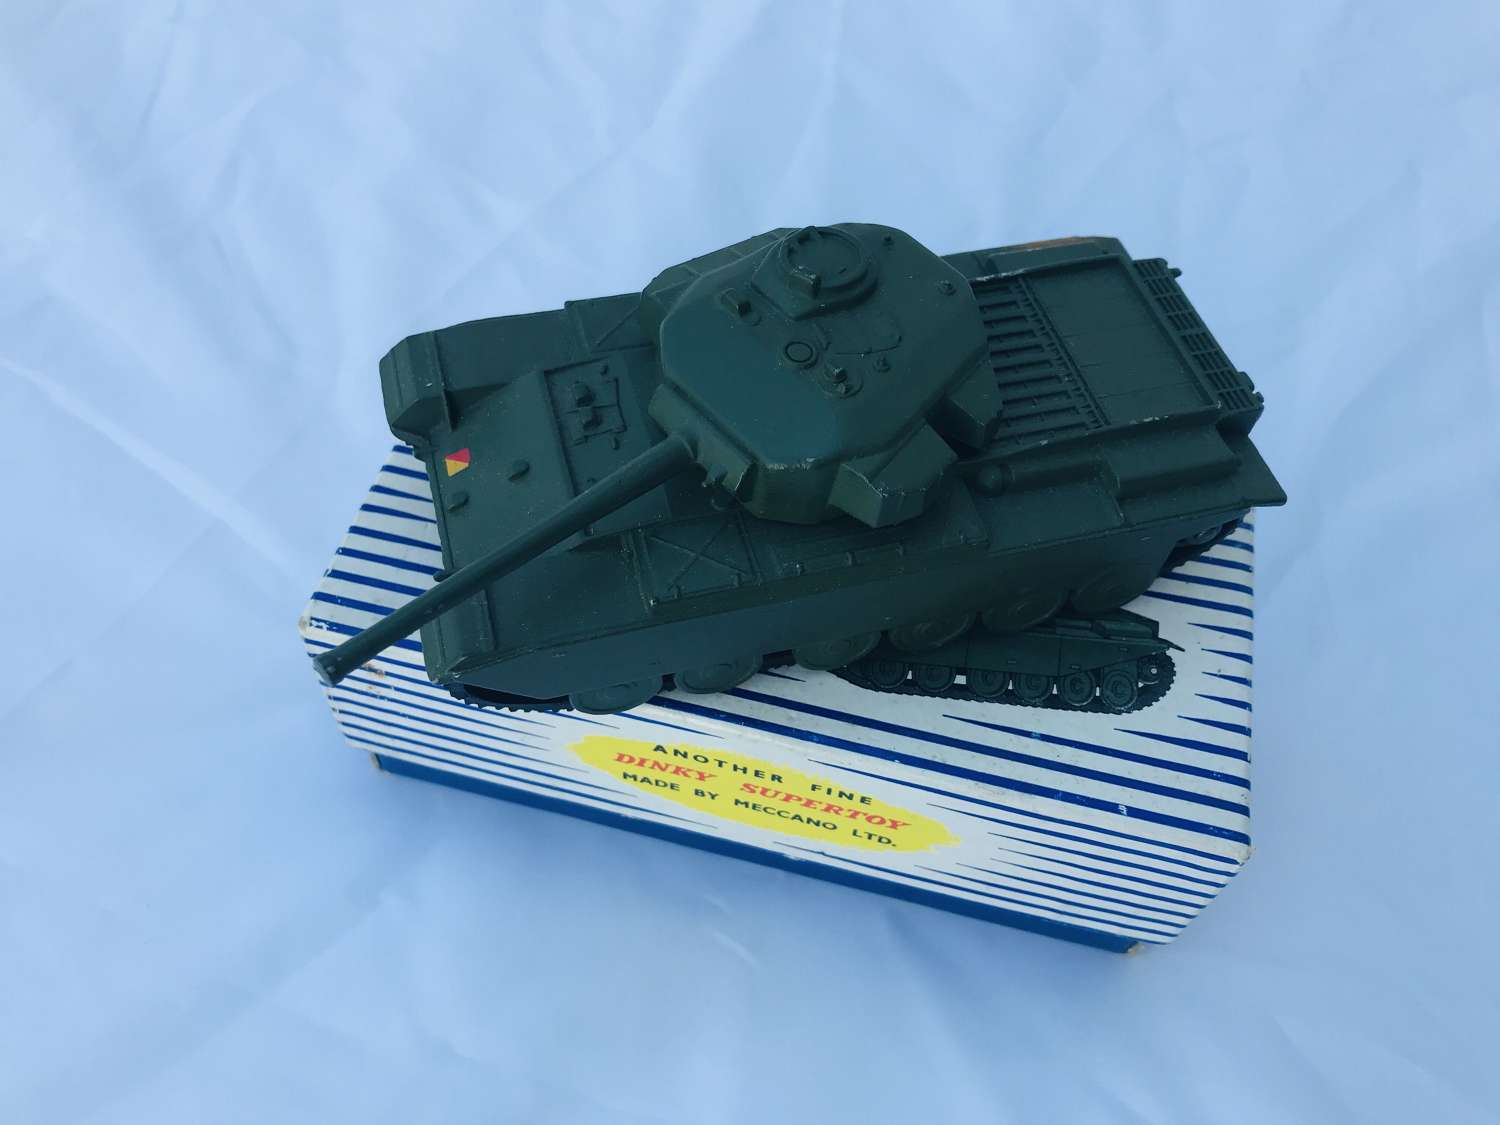 Dinky super toy centurion tank in its original box